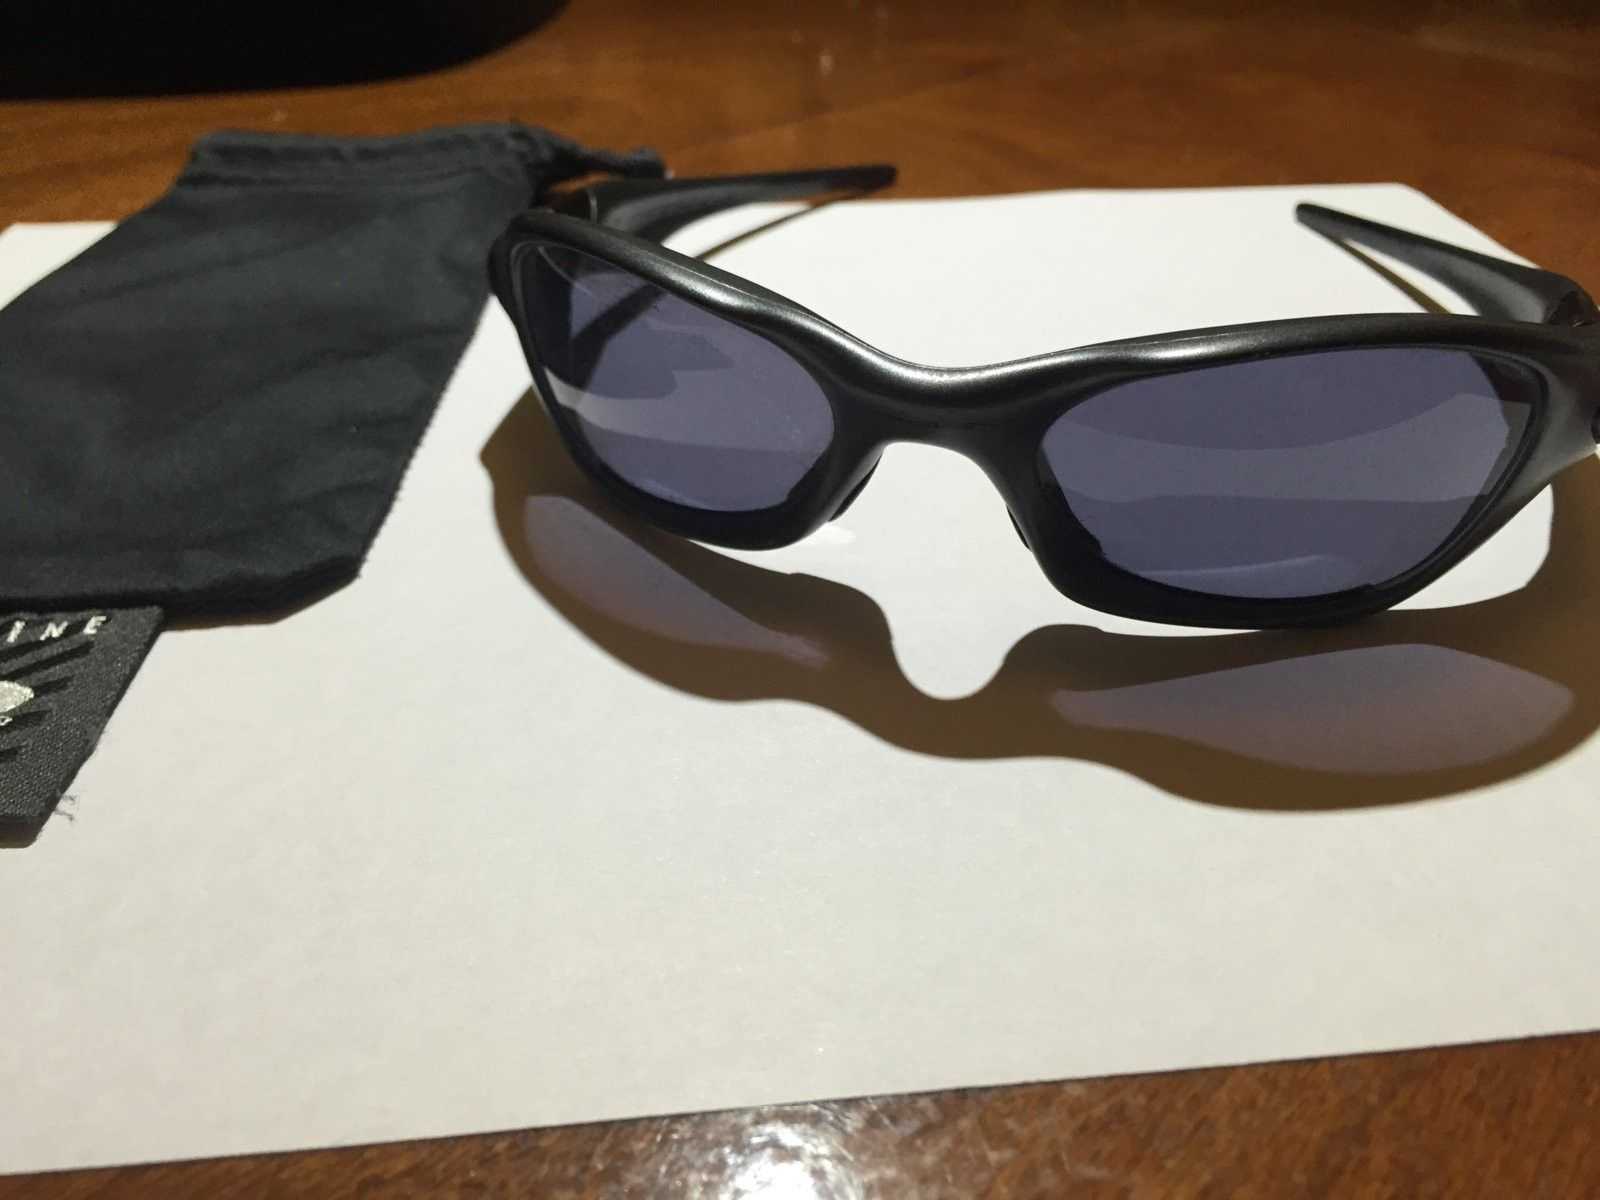 Recovered my beloved first pair of Oakleys - IMG_4817.JPG